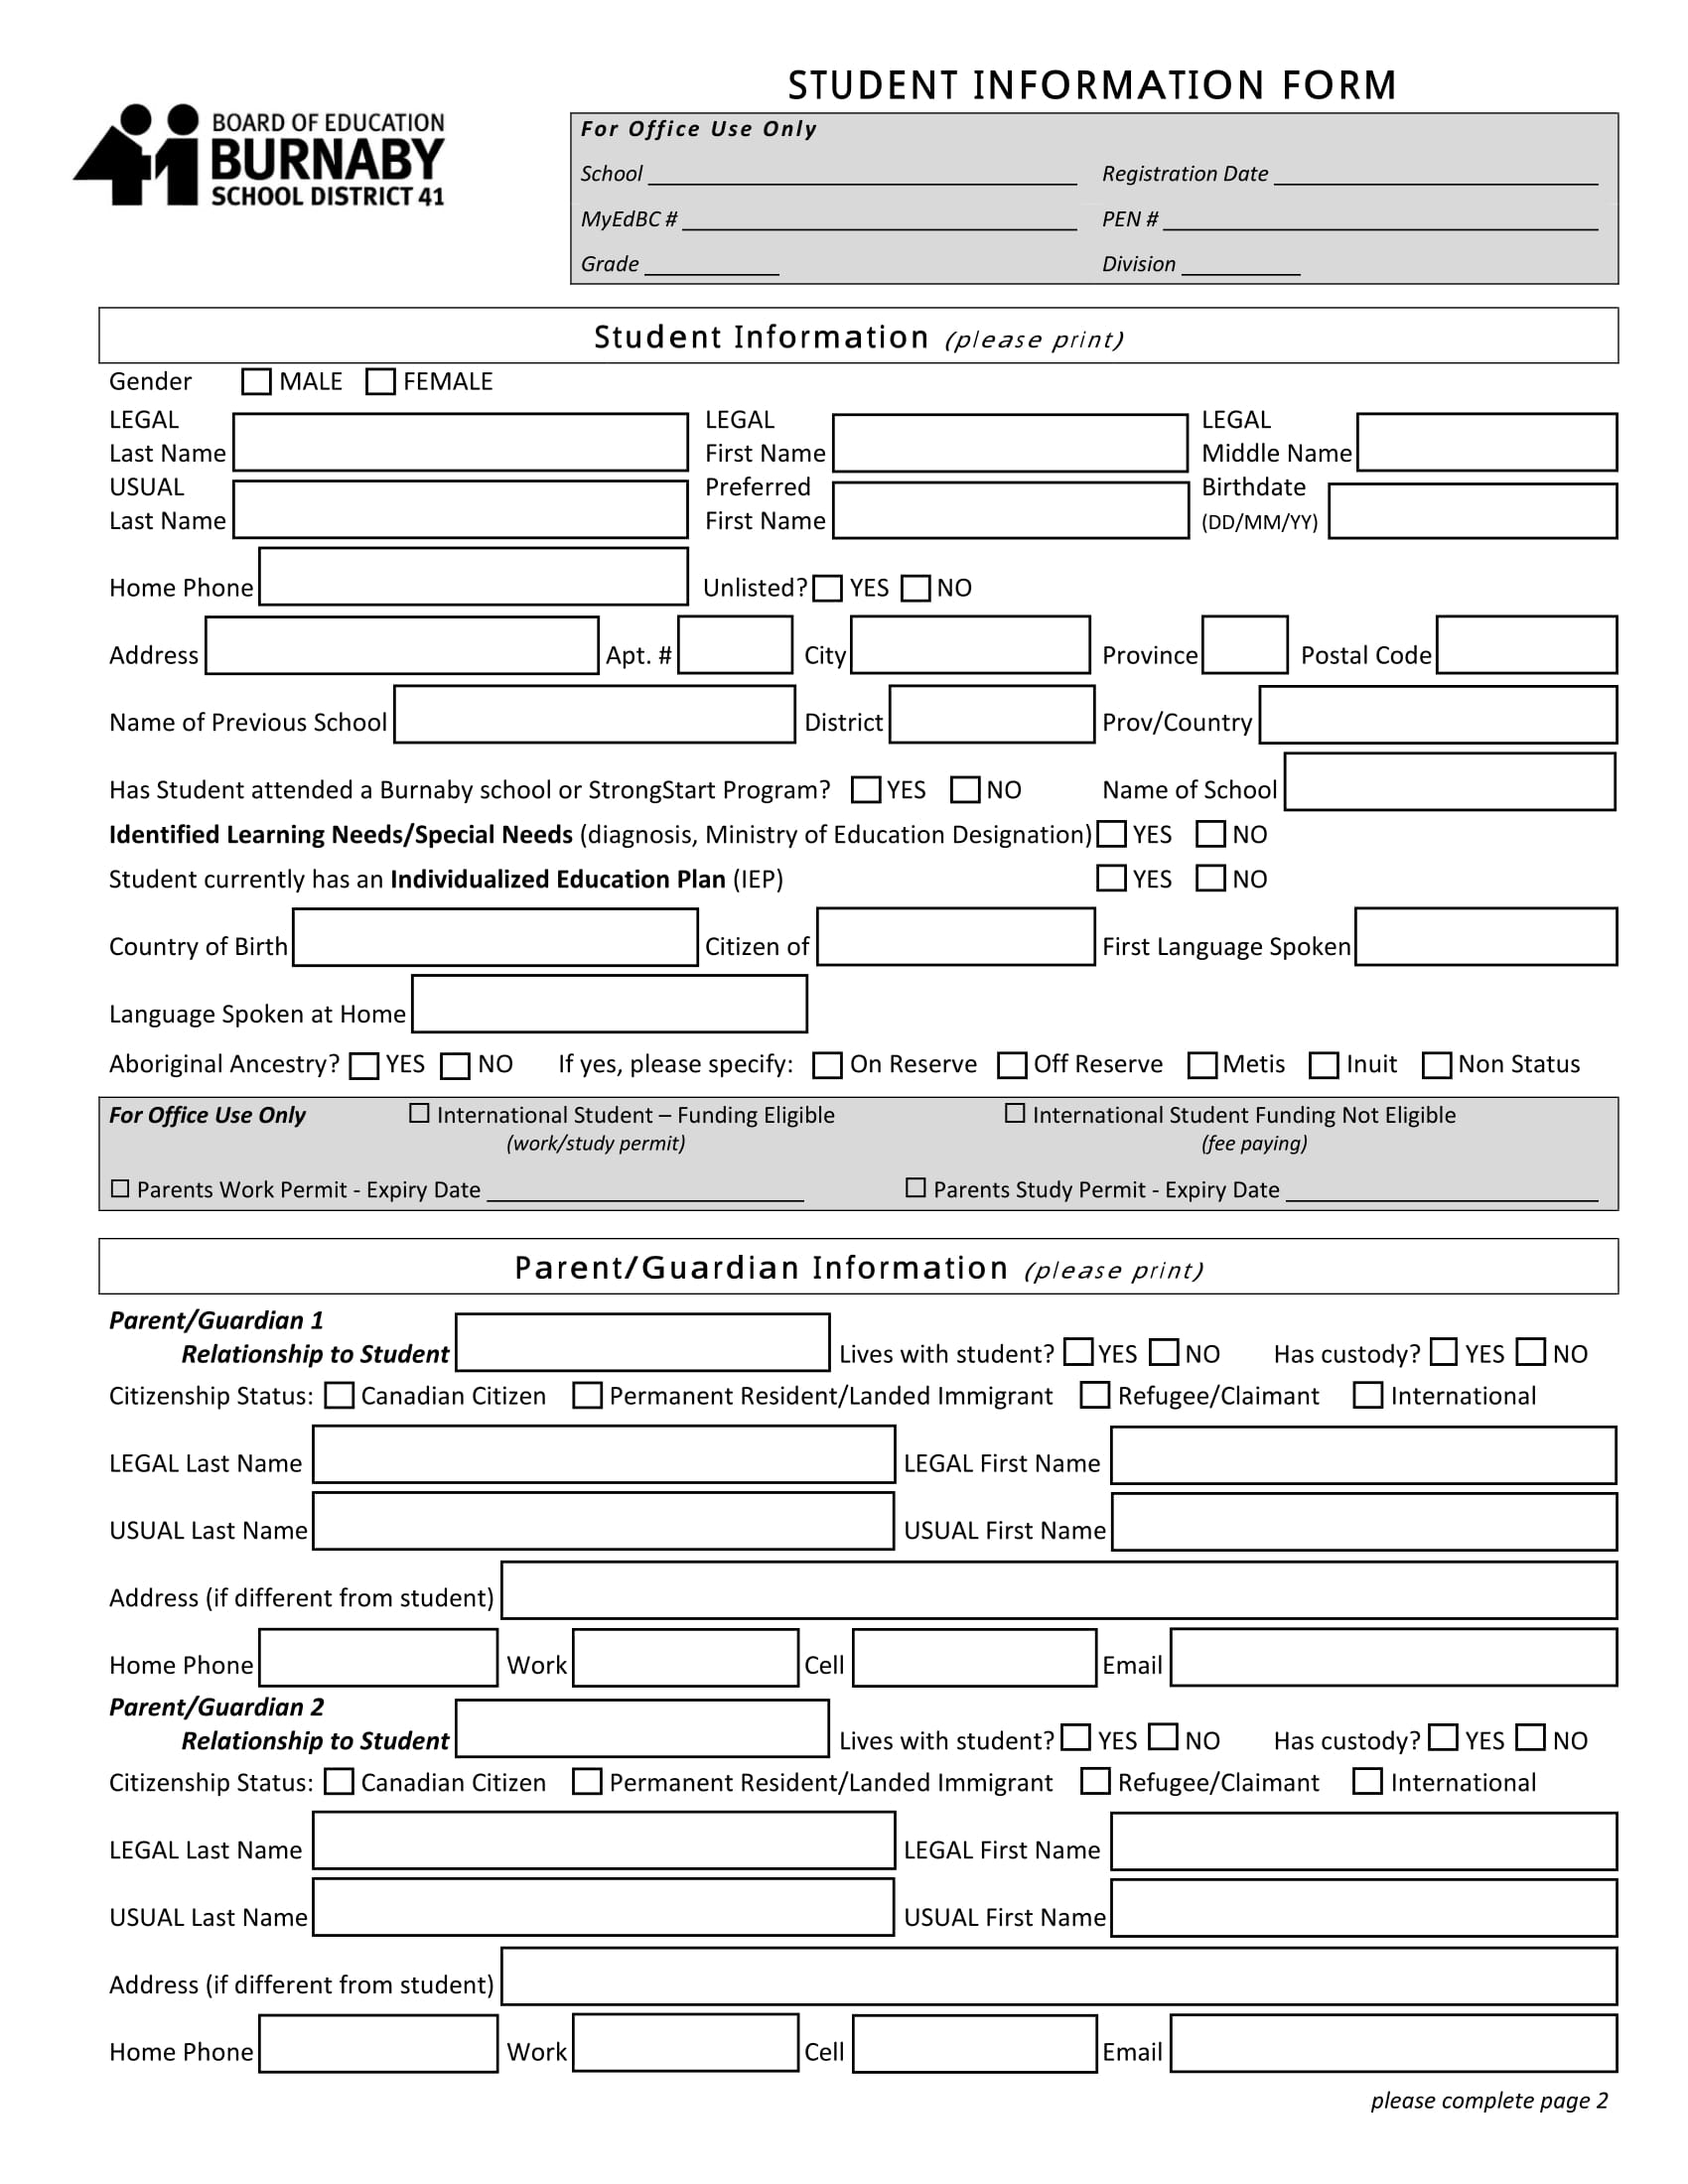 fillable student information form 1